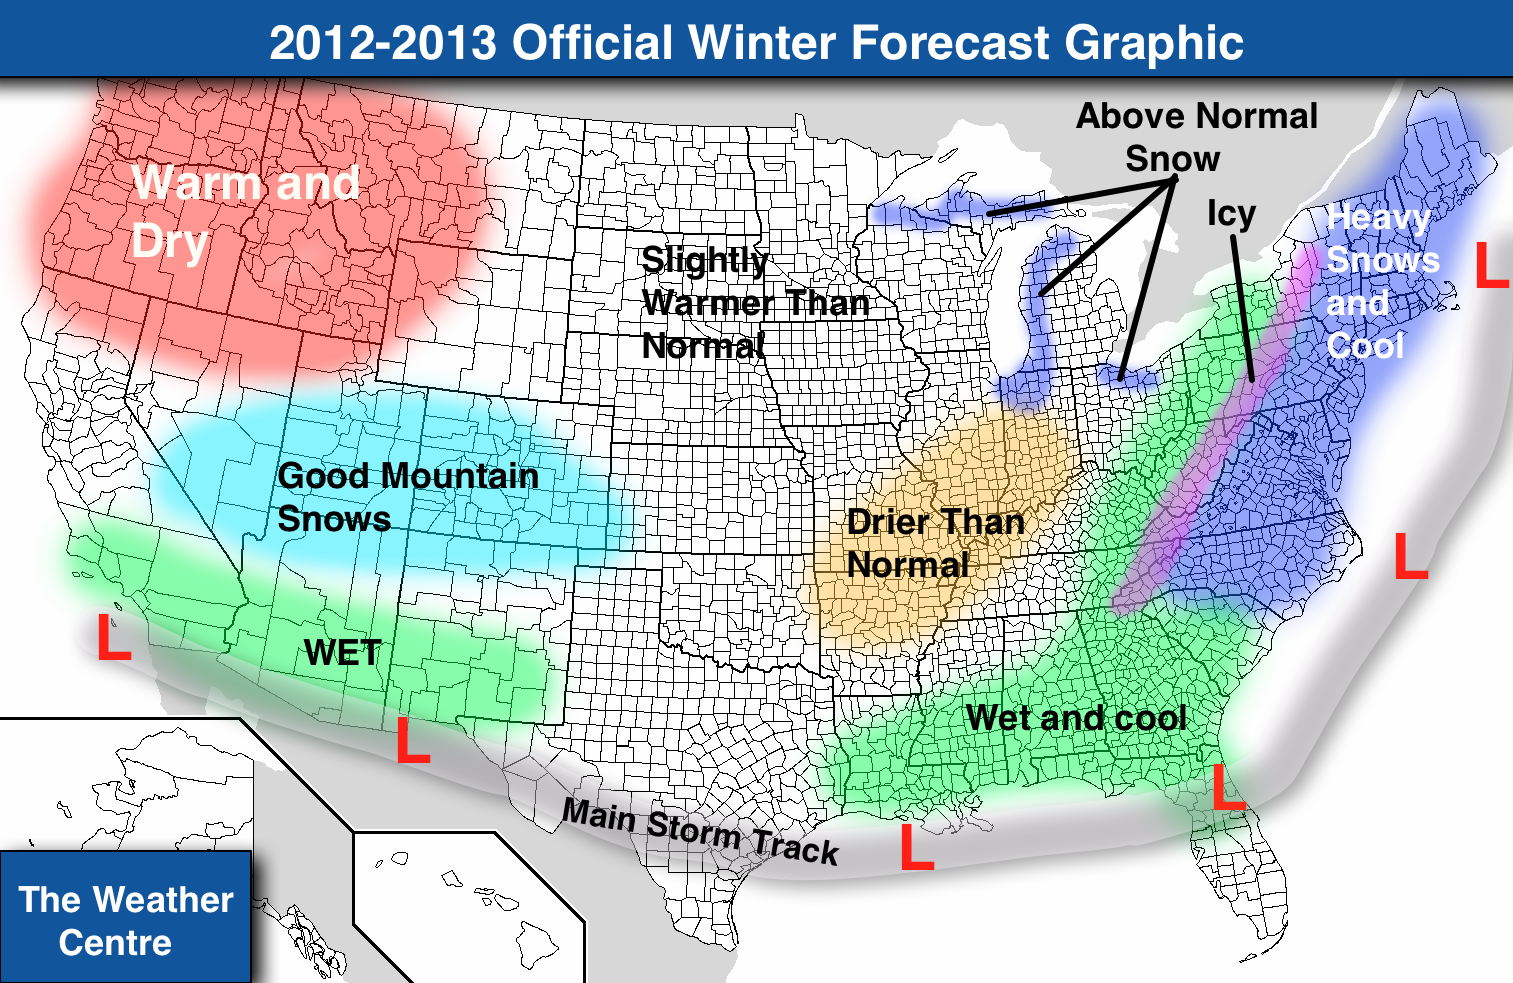 Thank you for reading the official 2012-2013 winter forecast. If you